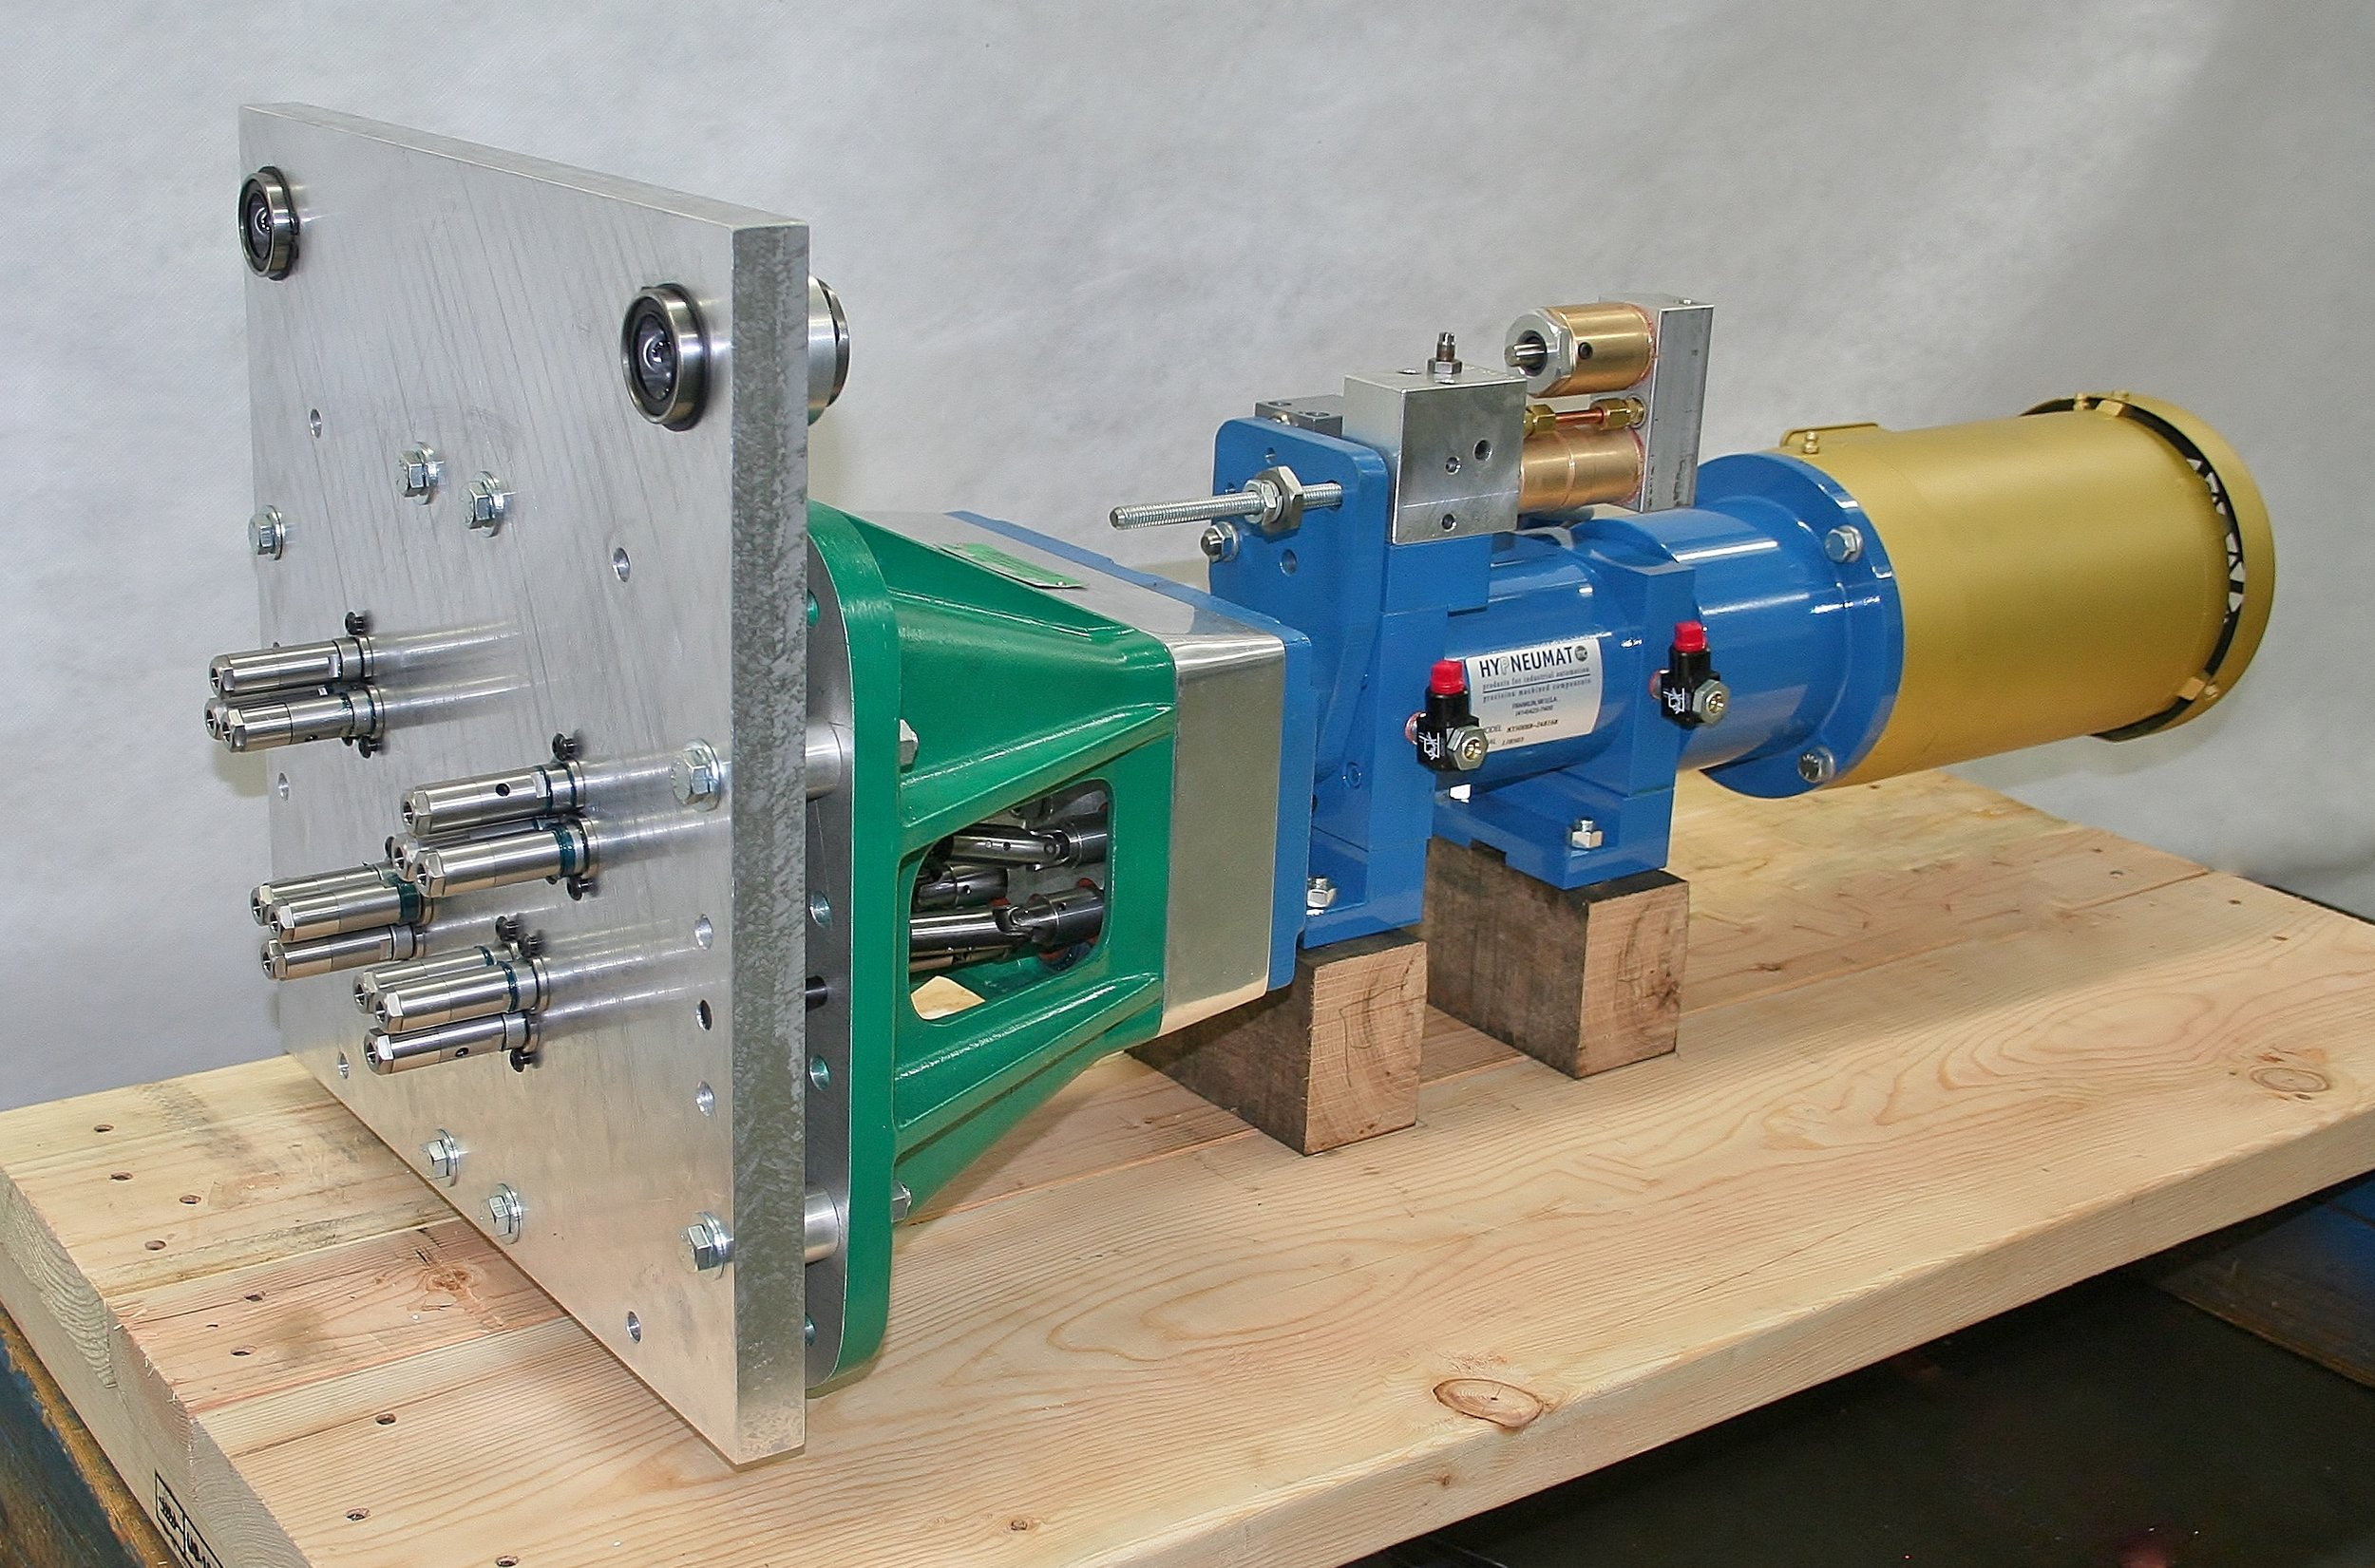 12-Spindle Fixed Position Plates Designed for Quick Changeover for Drilling a Variety of Multiple-Spindle Hole Patterns.